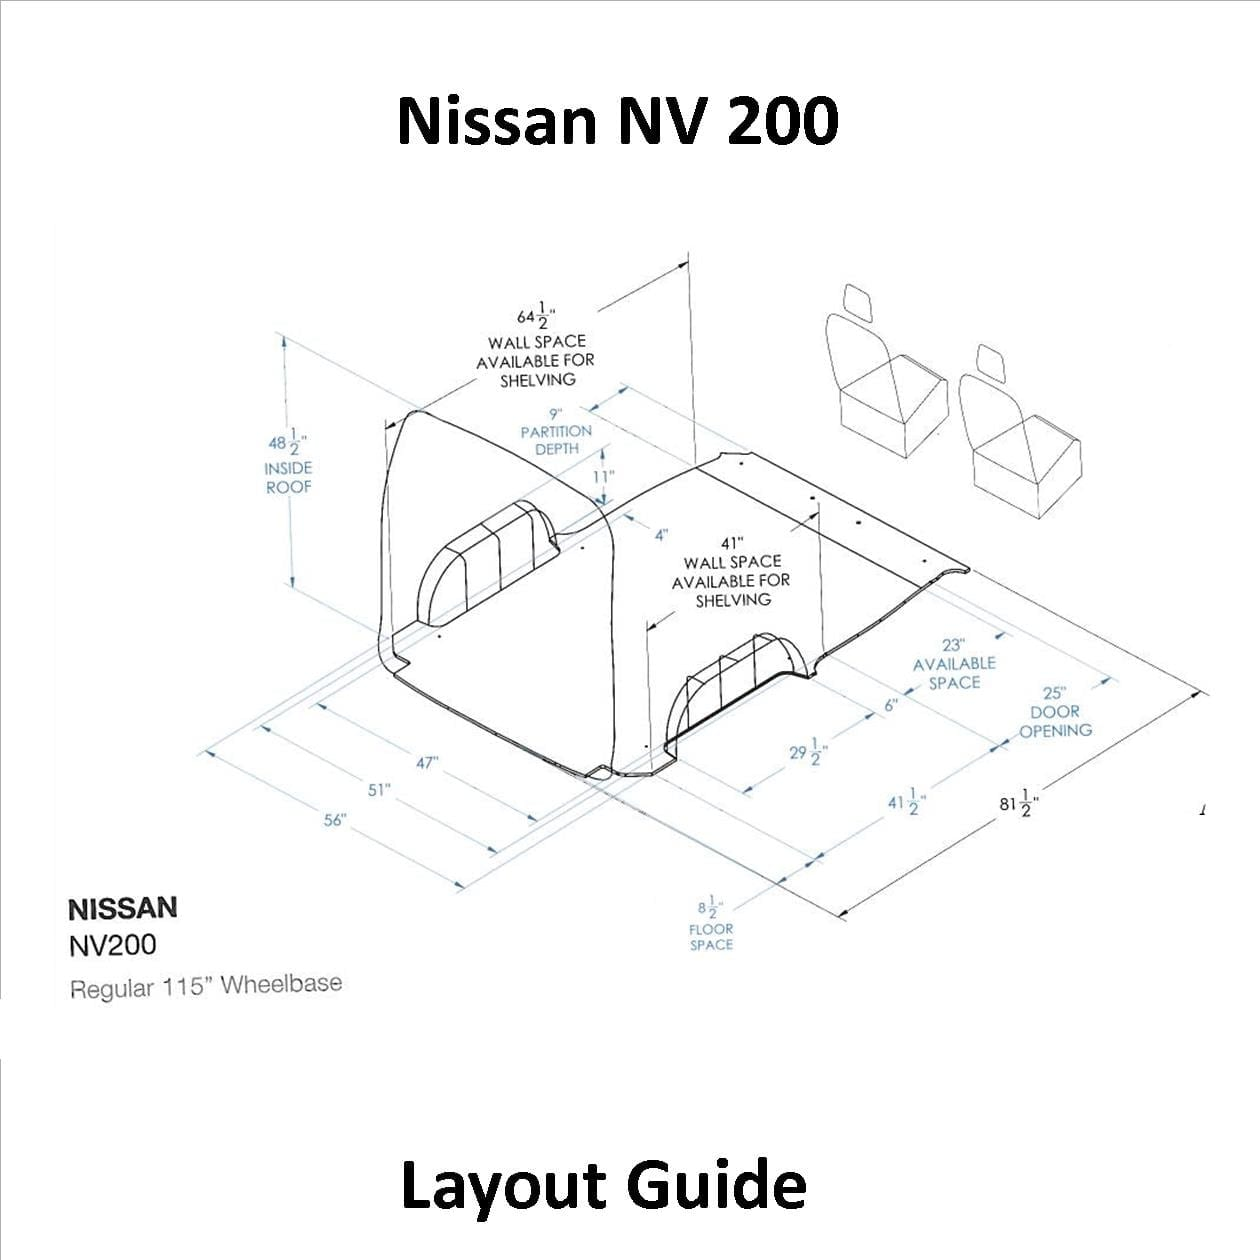 Nissan Layout Guide Nissan Nv200